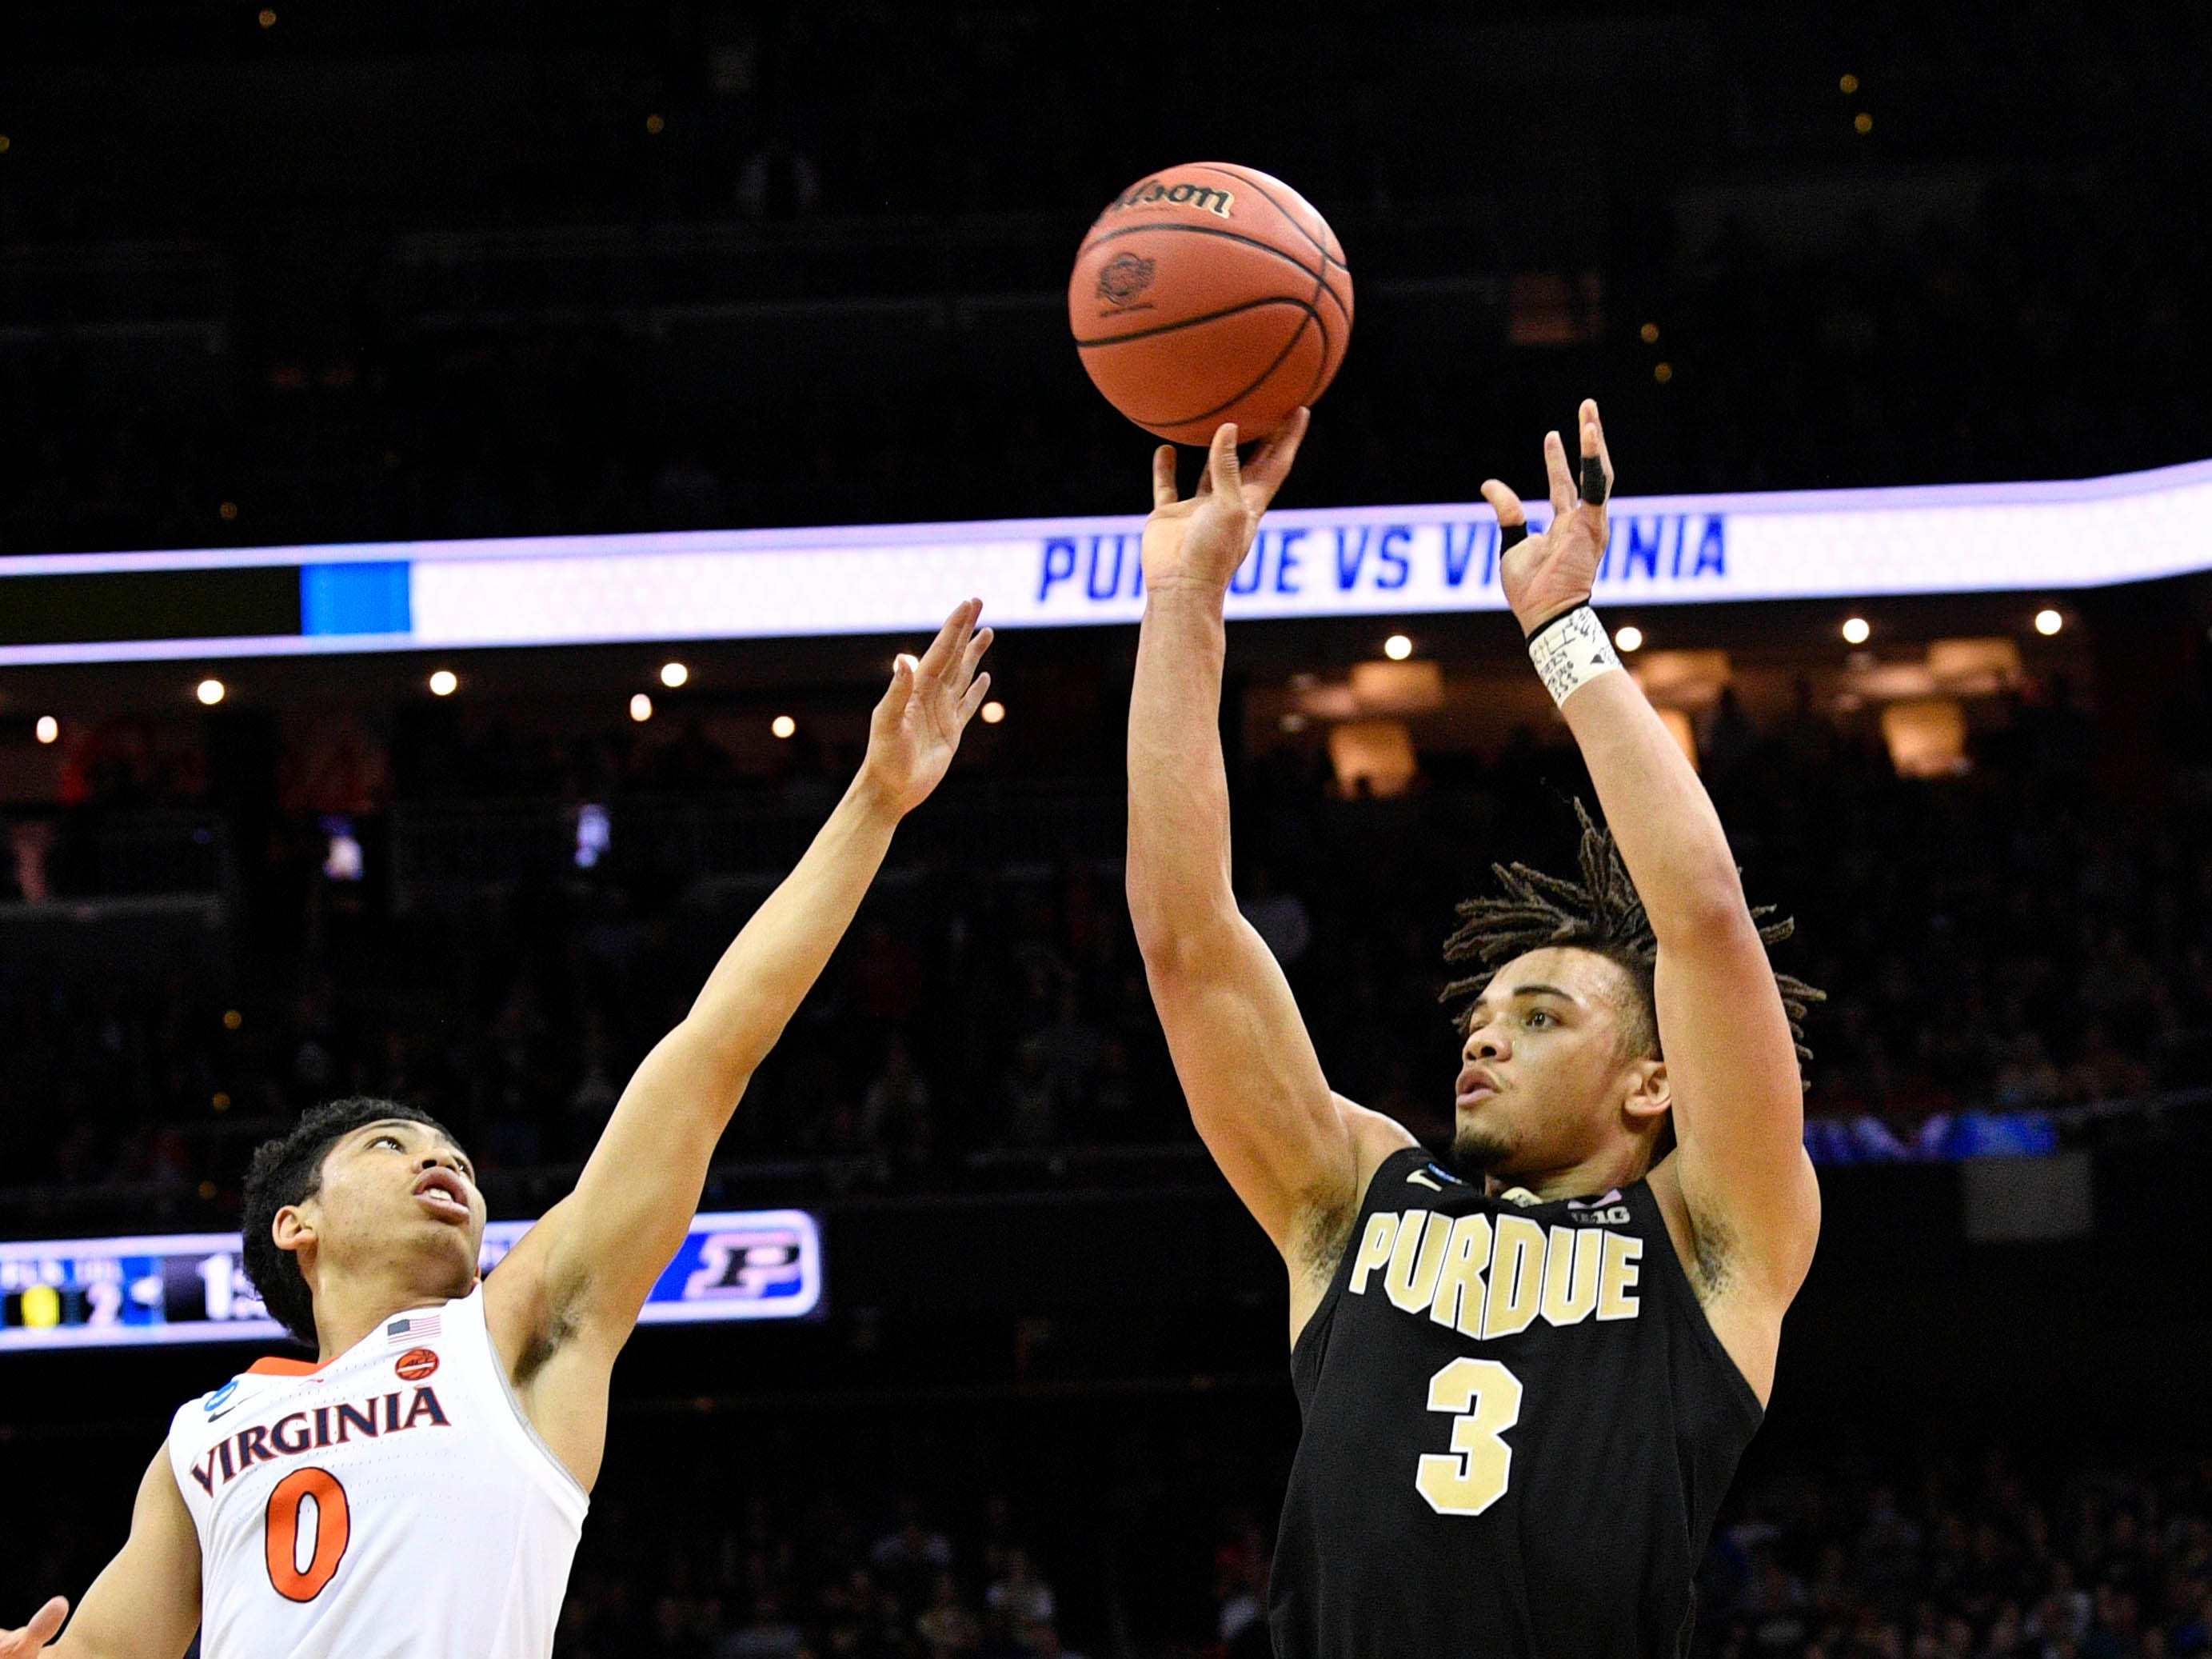 Mar 30, 2019; Louisville, KY, United States; Purdue Boilermakers guard Carsen Edwards (3) shoots as Virginia Cavaliers guard Kihei Clark (0) defends during overtime in the championship game of the south regional of the 2019 NCAA Tournament at KFC Yum Center. Mandatory Credit: Jamie Rhodes-USA TODAY Sports